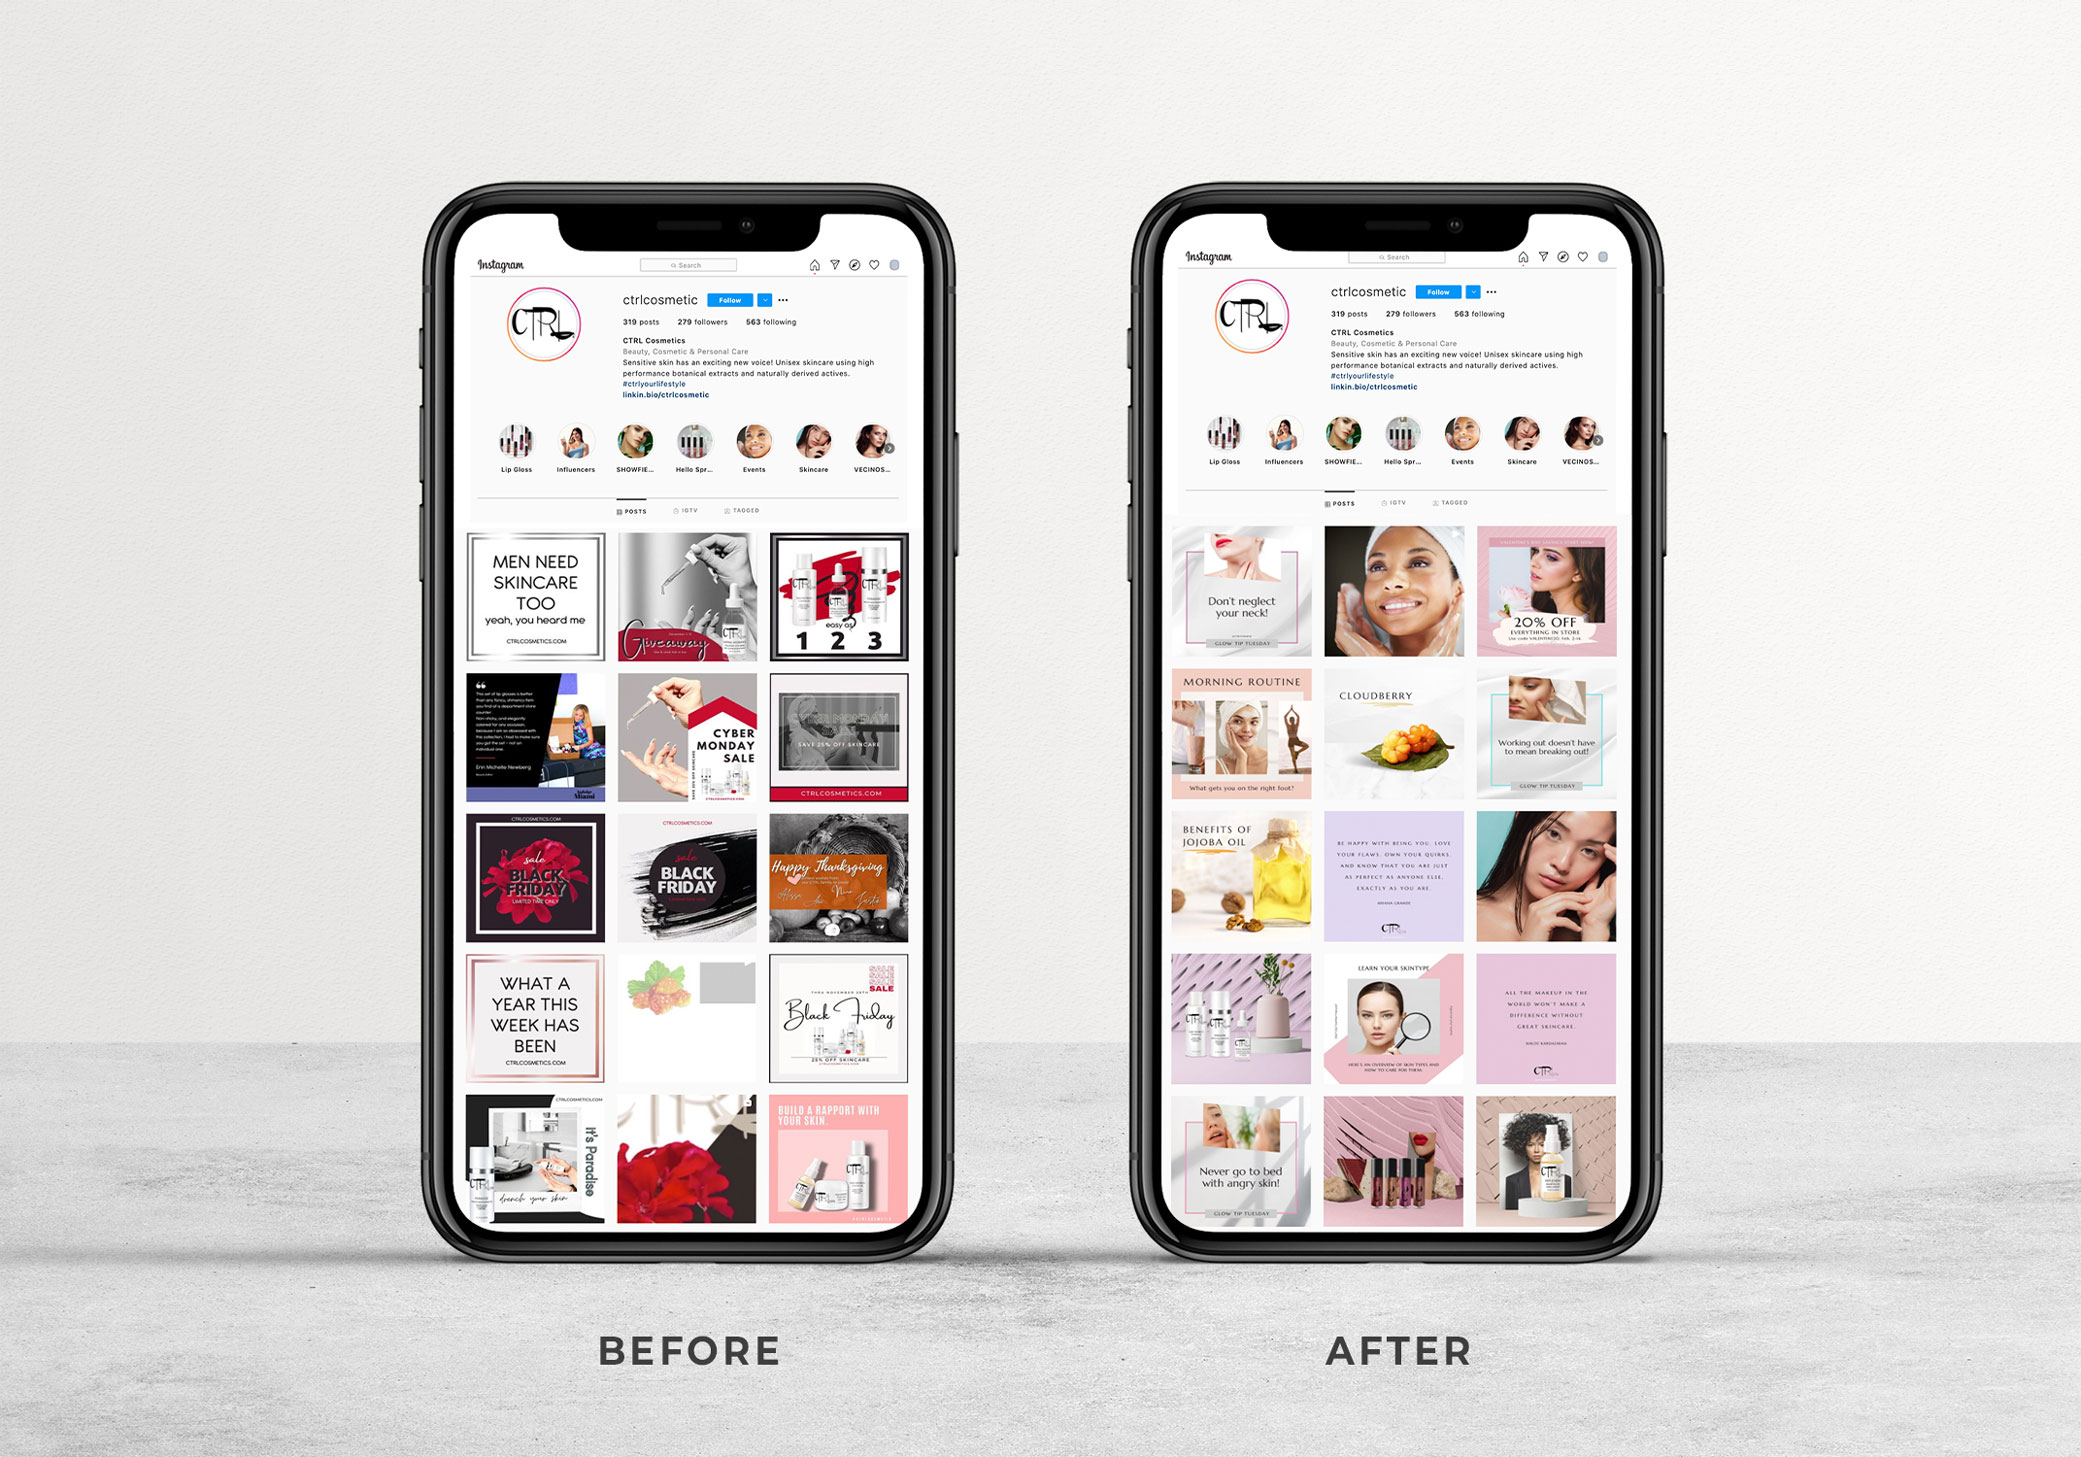 CTRL Cosmetics before and after social media marketing brand Instagram layout on iPhone.